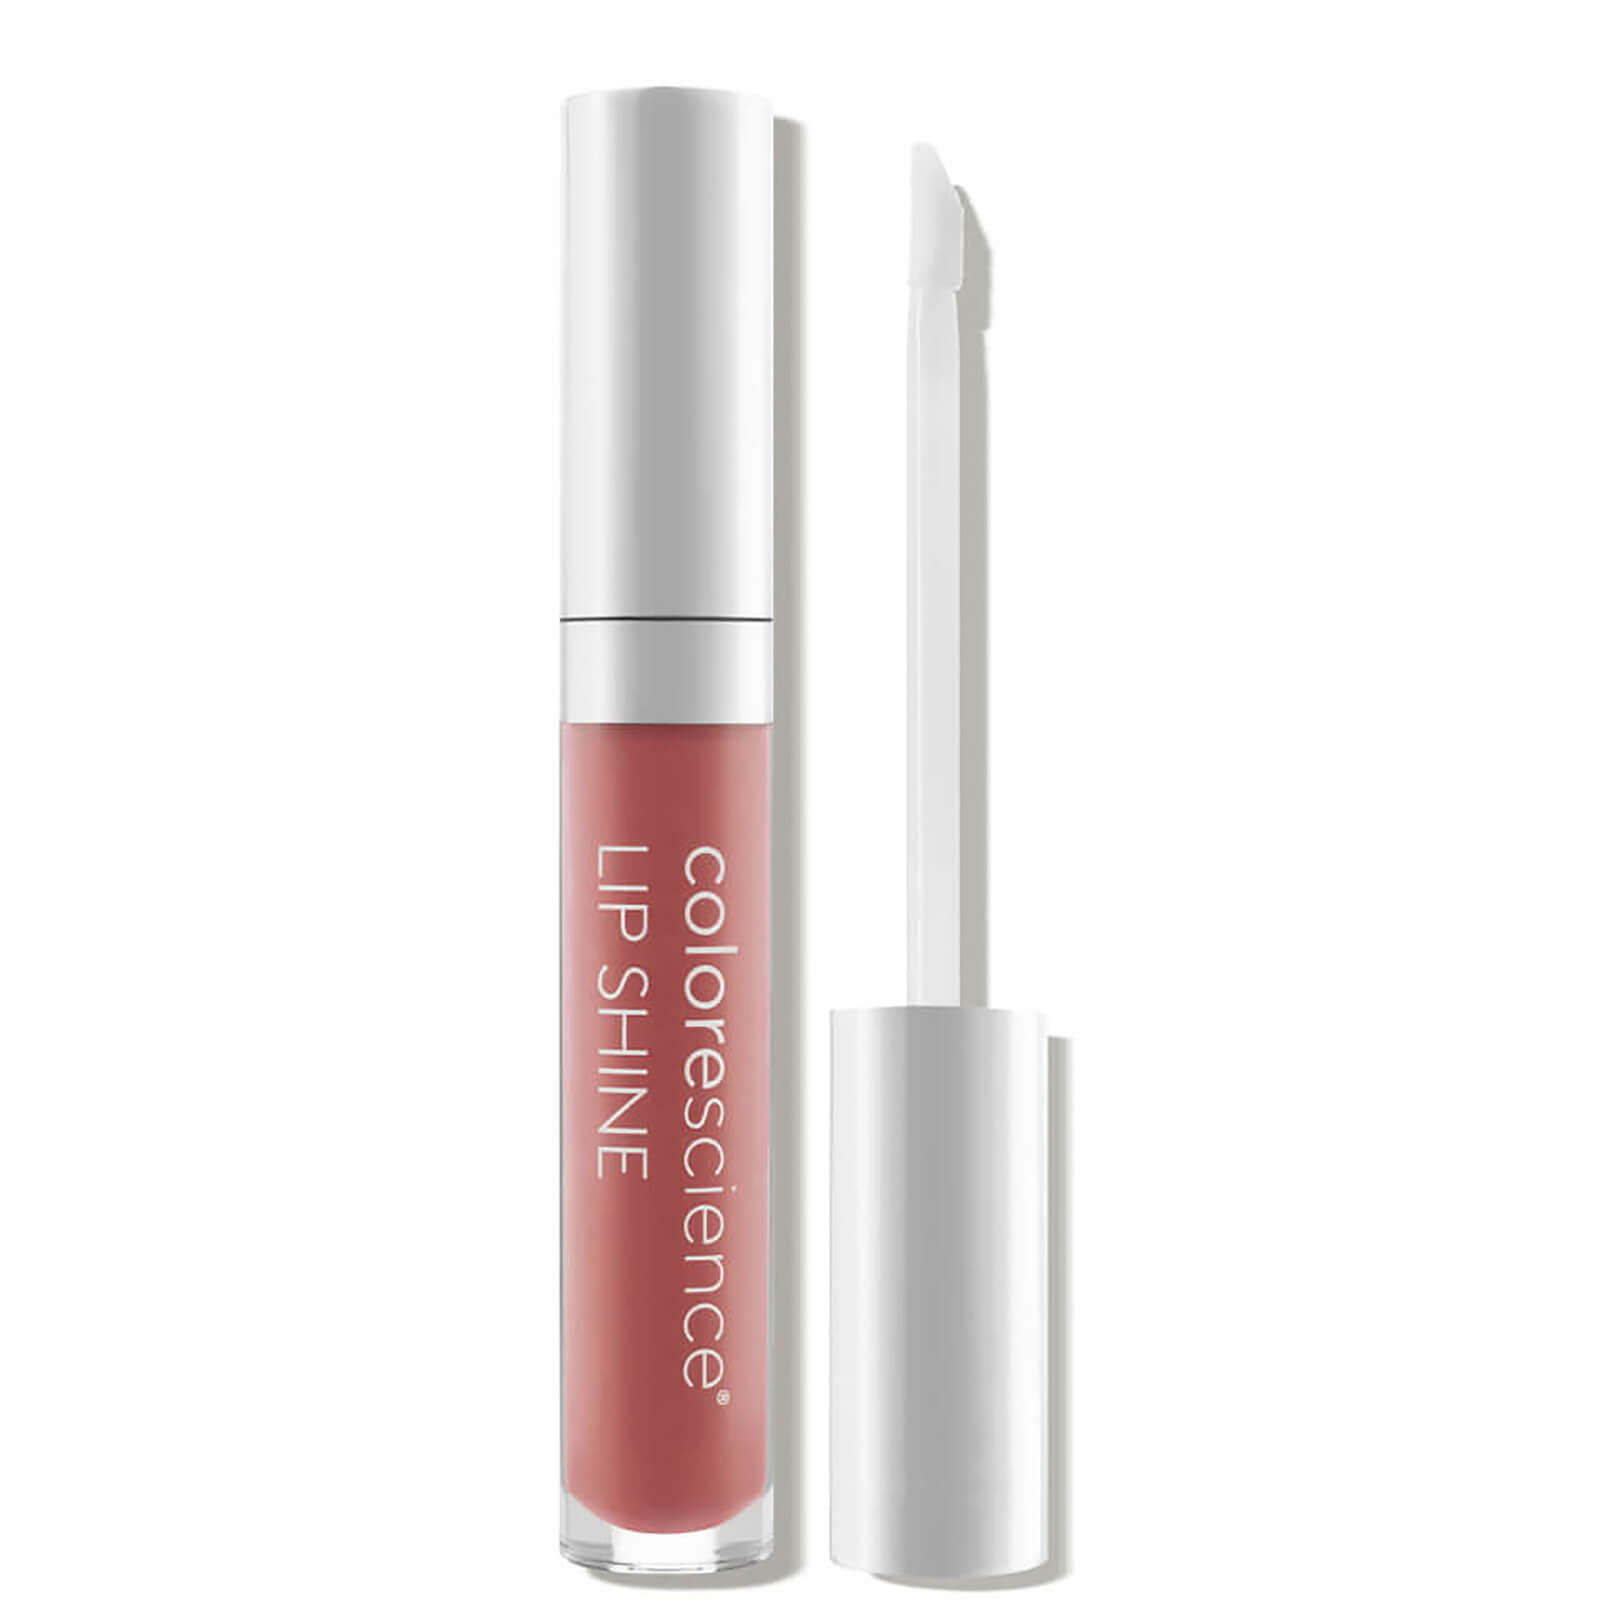 Watch a story about COLORESCIENCE SUNFORGETTABLE LIP SHINE SPF35 0.12OZ (VARIOUS SHADES) - CORAL